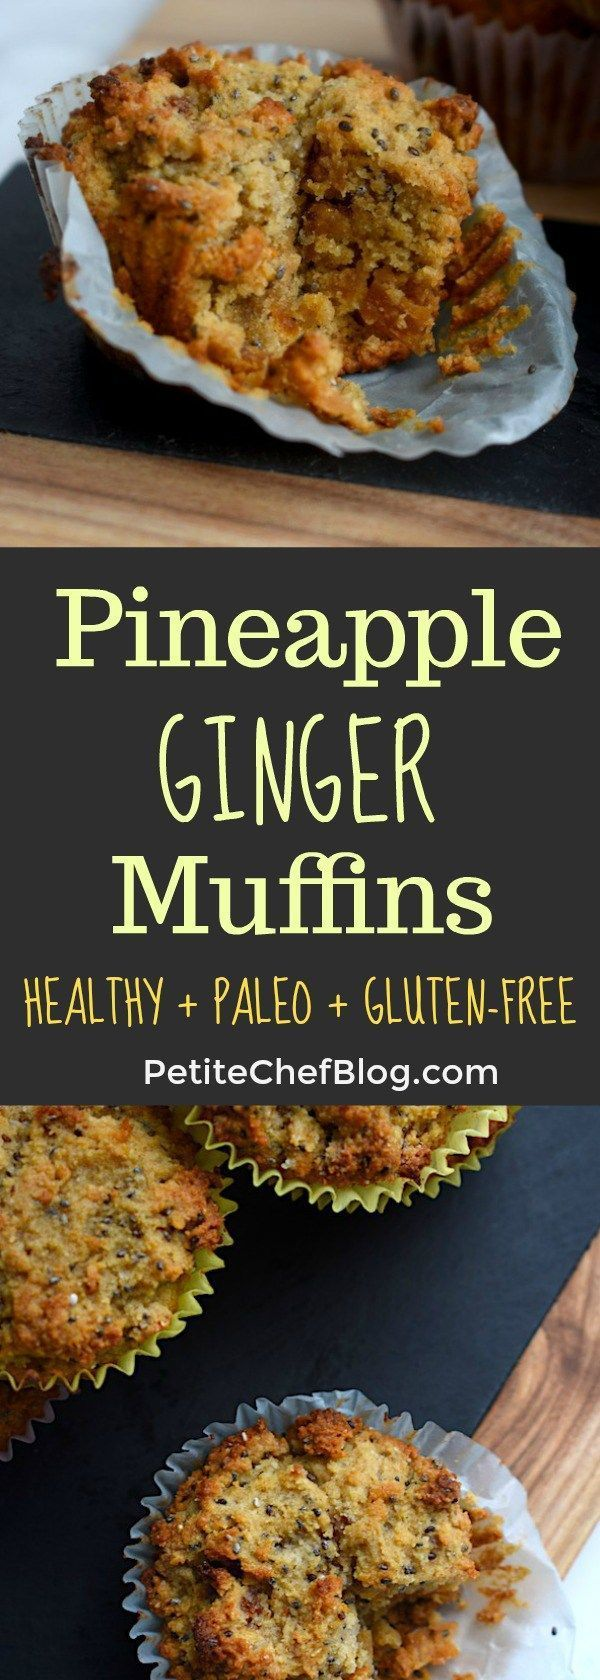 Paleo & Gluten-Free Pineapple Ginger Muffins | Made with no sugar added dried pineapple, ground ginger + honey | PETITECHEFBLOG.COM